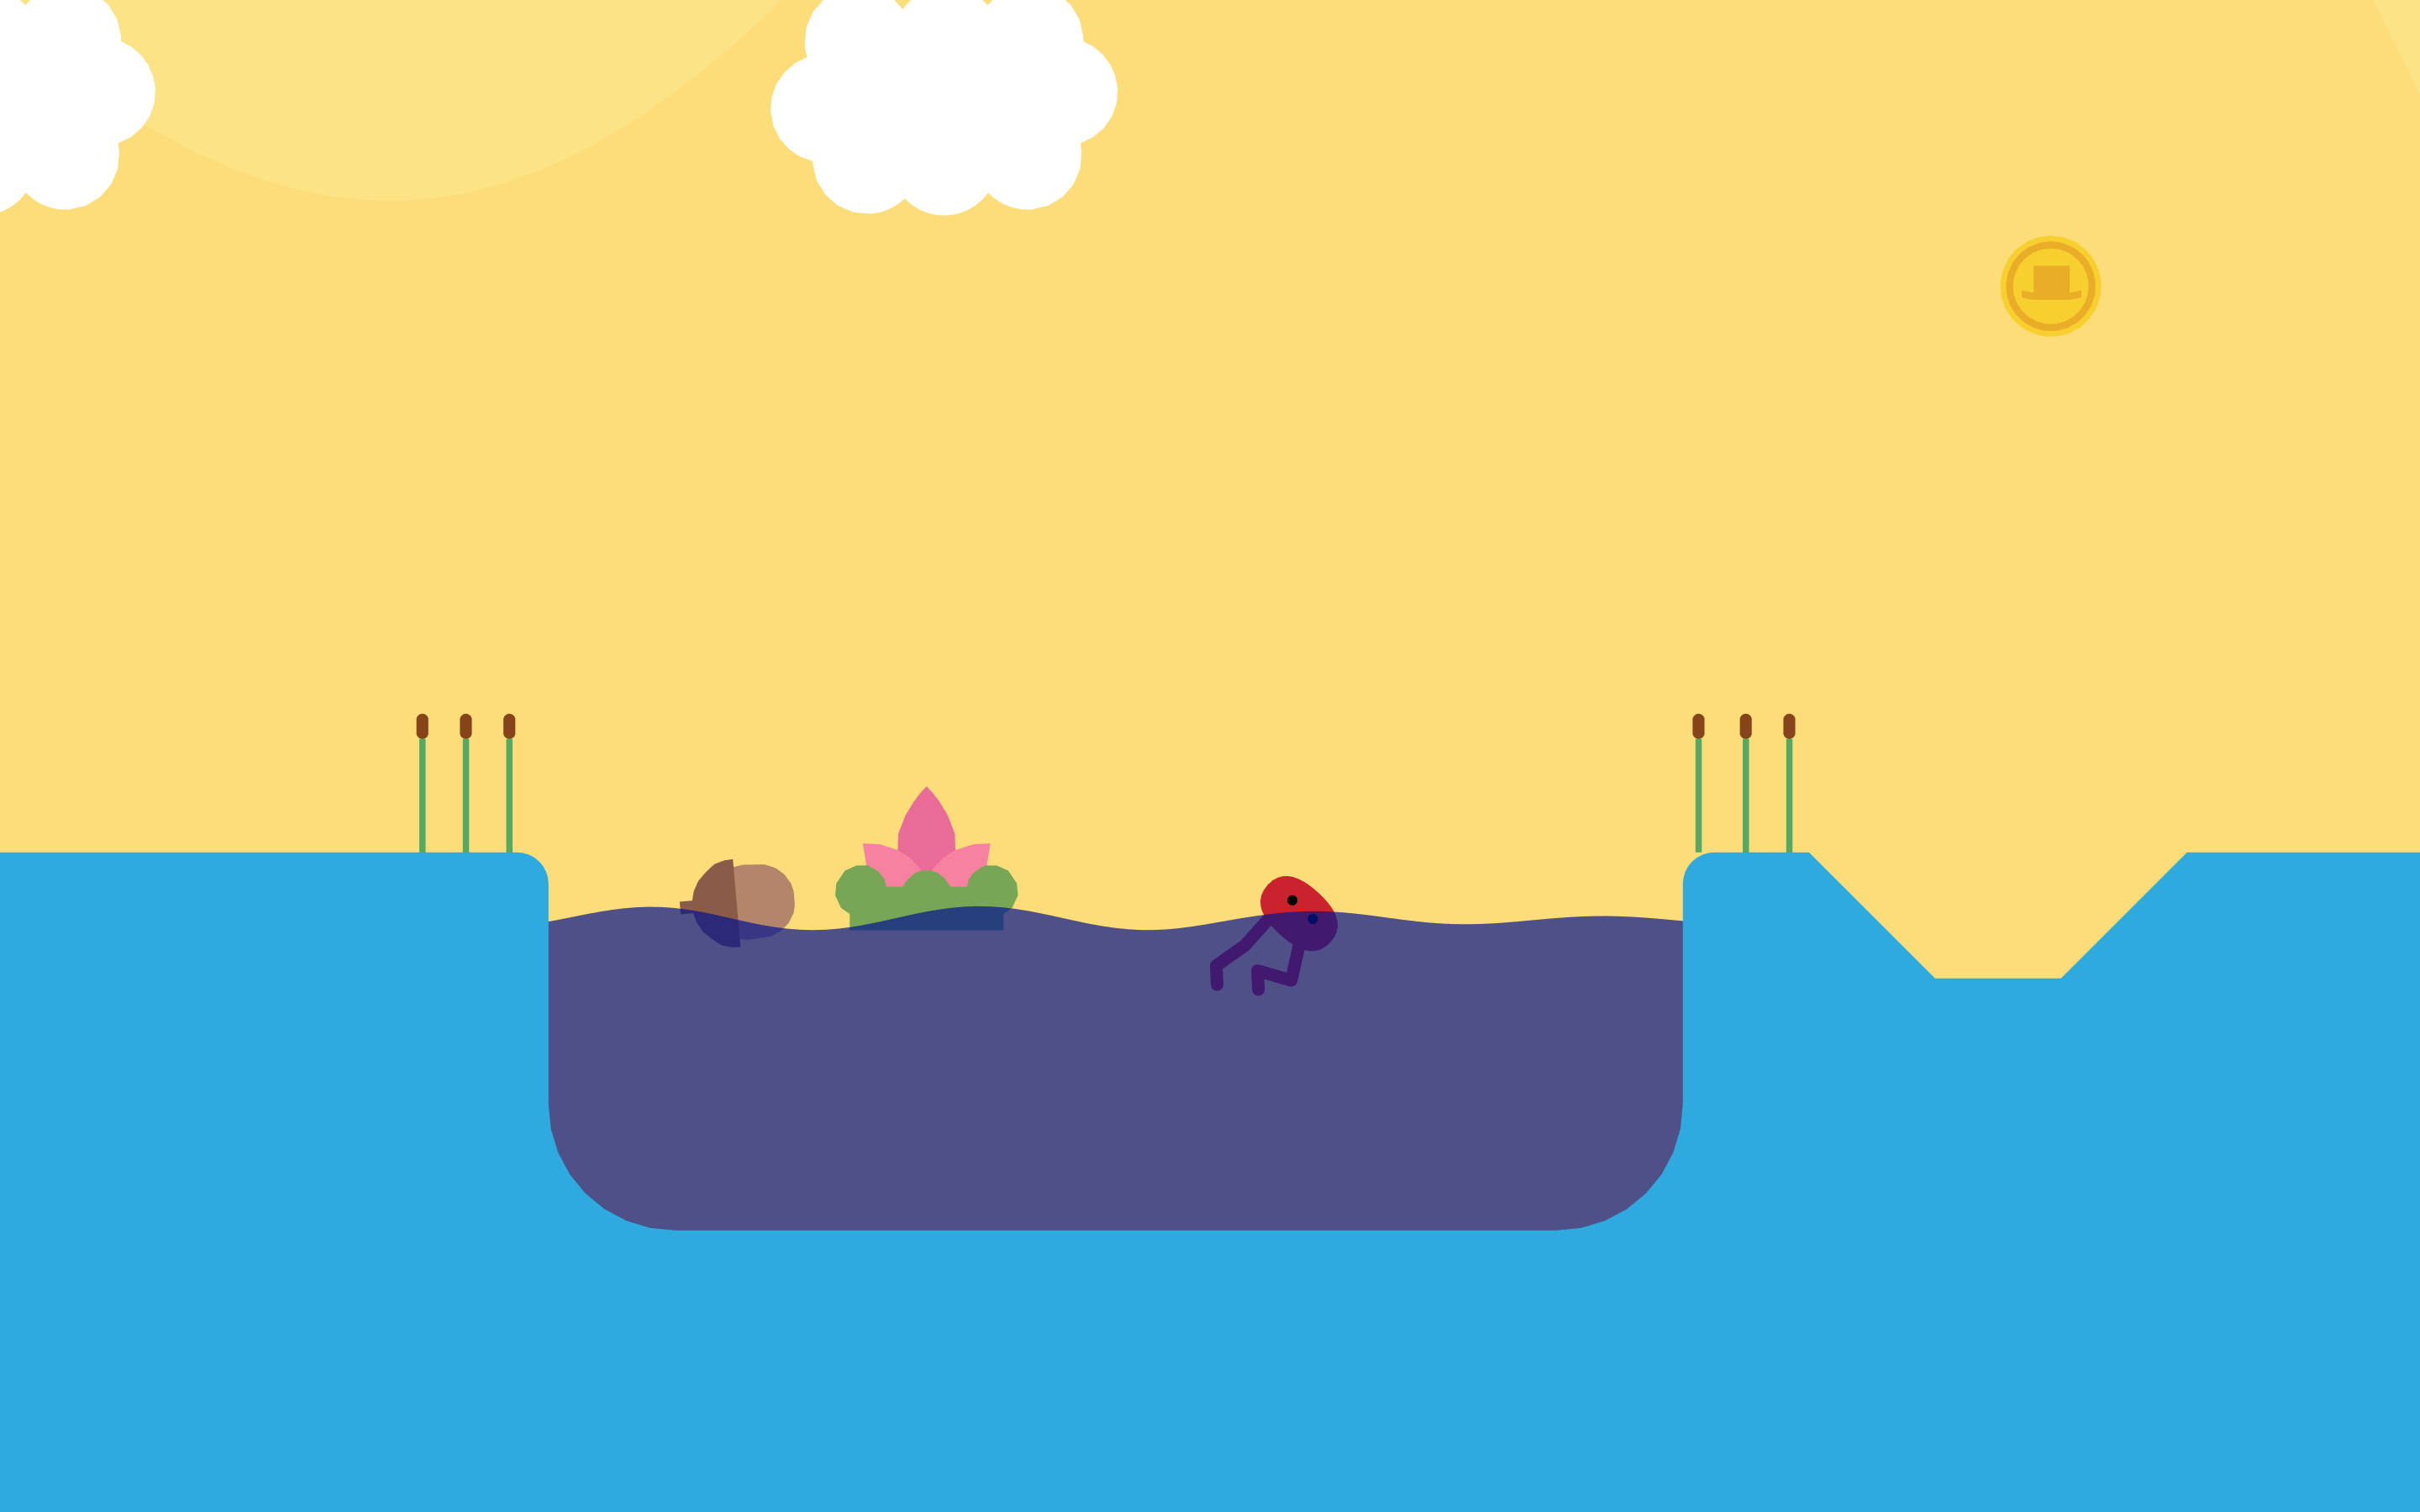 pikuniku_screenshot_5.png